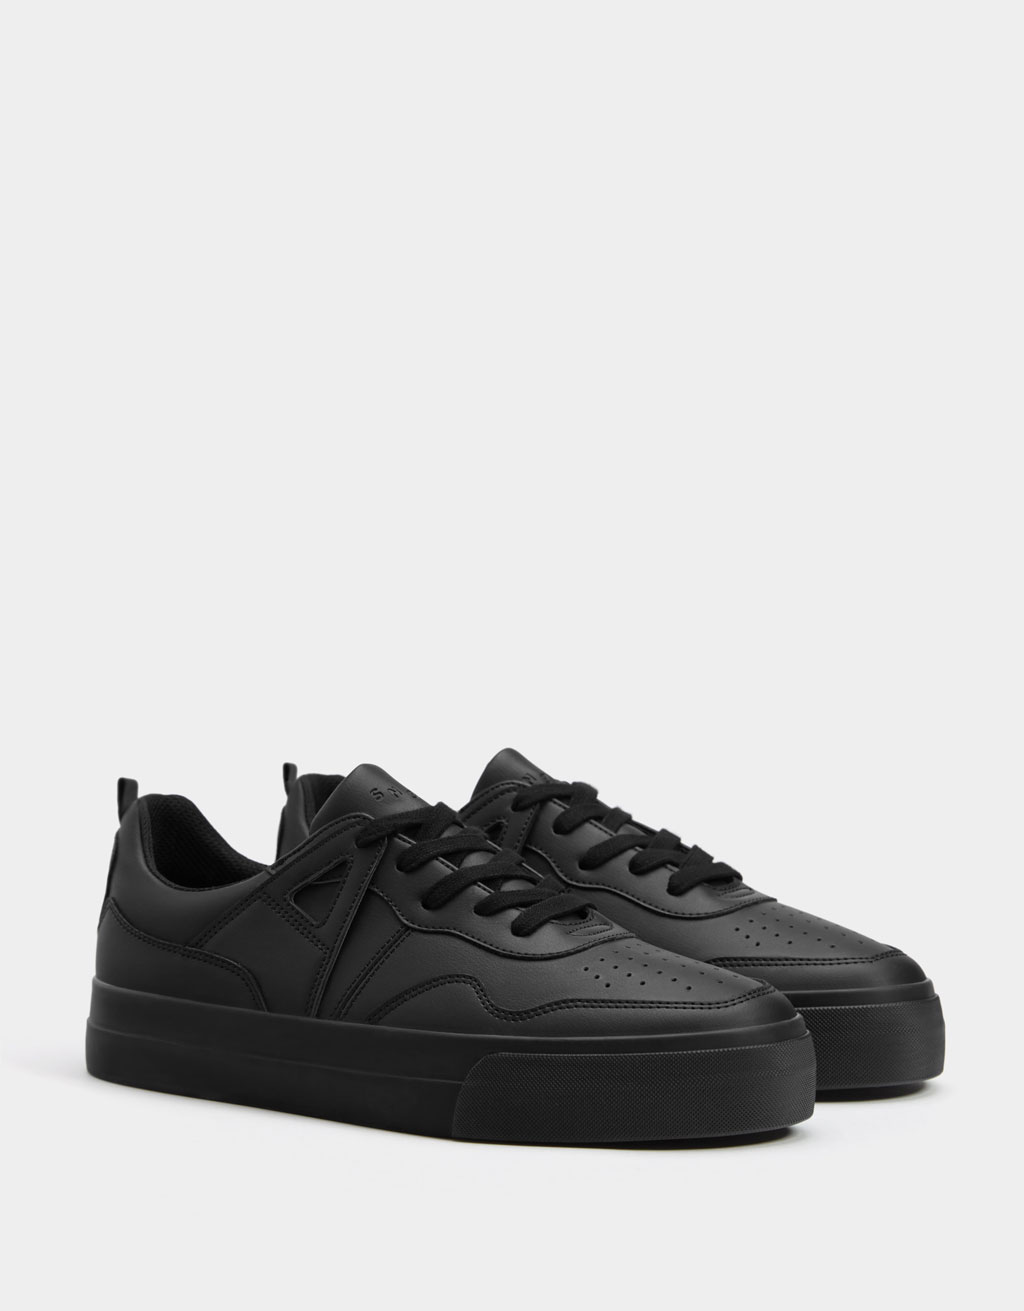 Men's black monochrome trainers